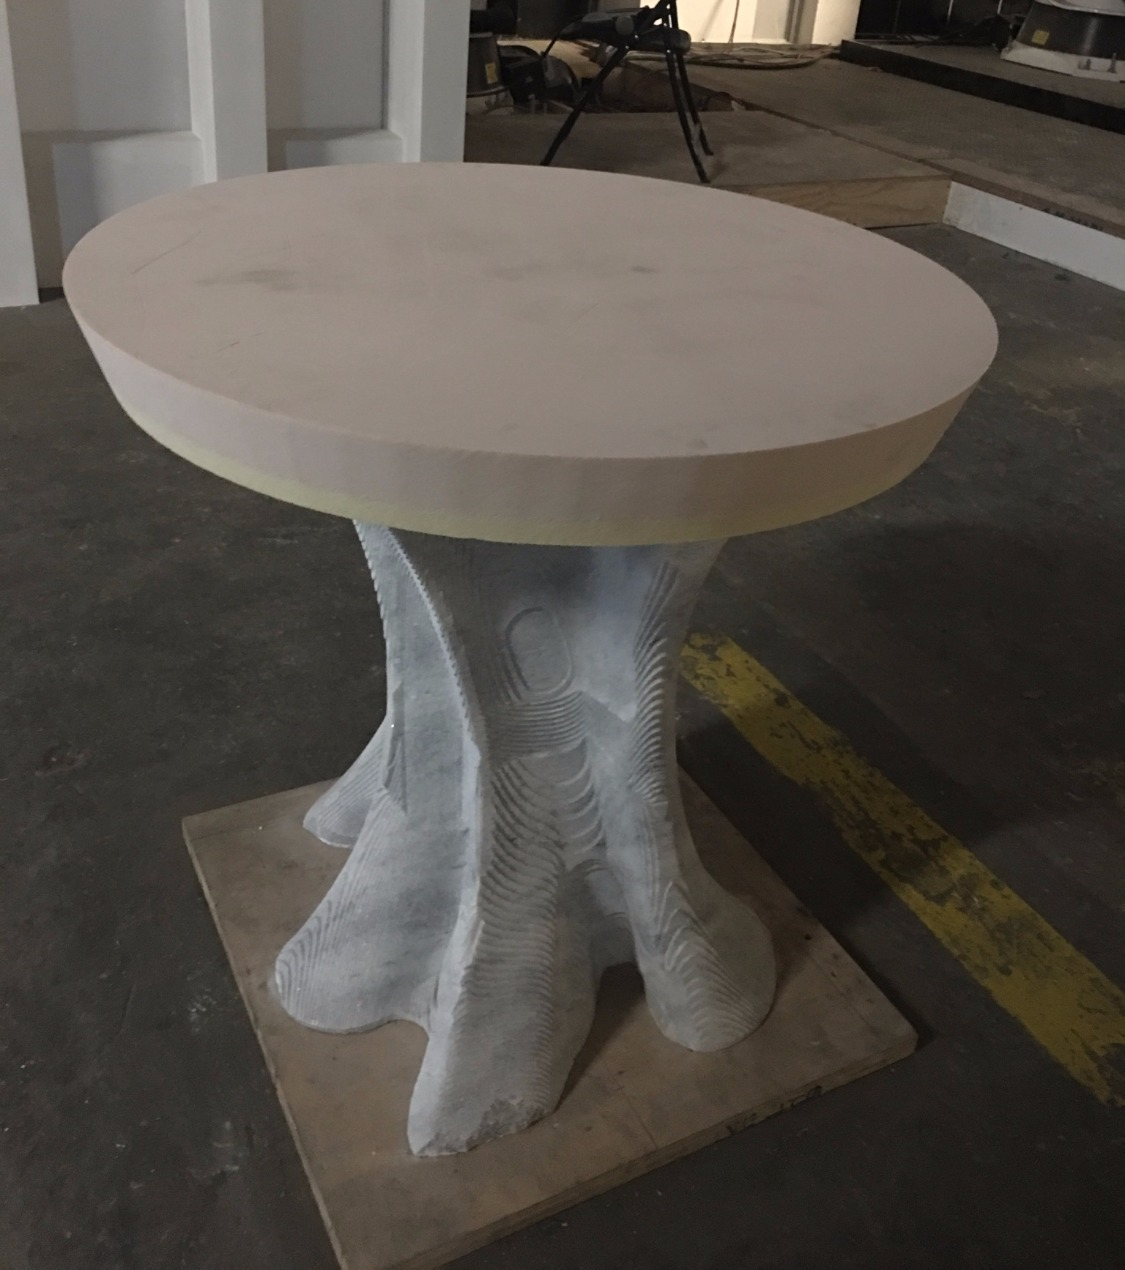 Table for private client